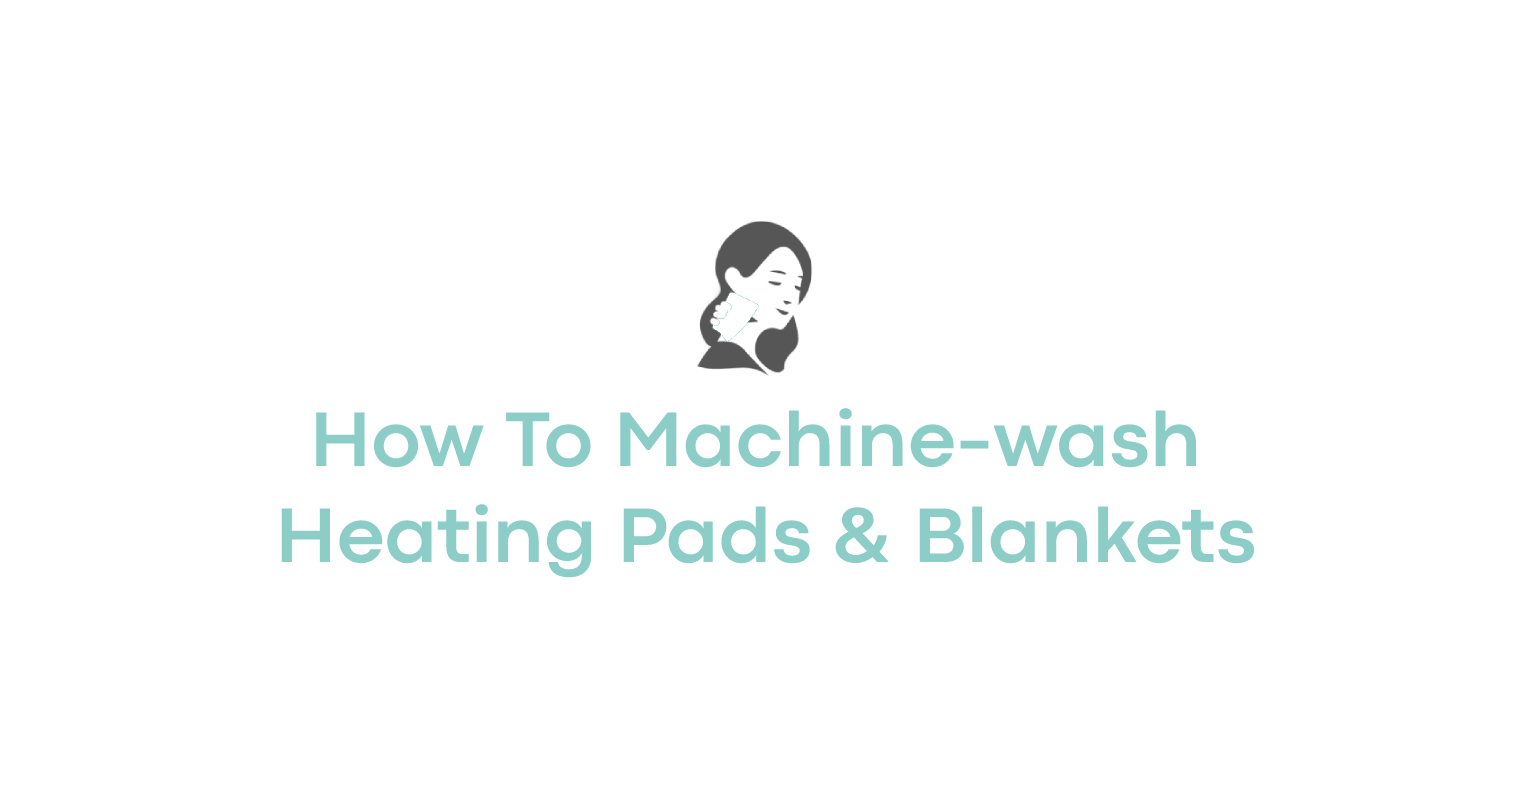 How To Machine-wash Heating Pads & Blankets